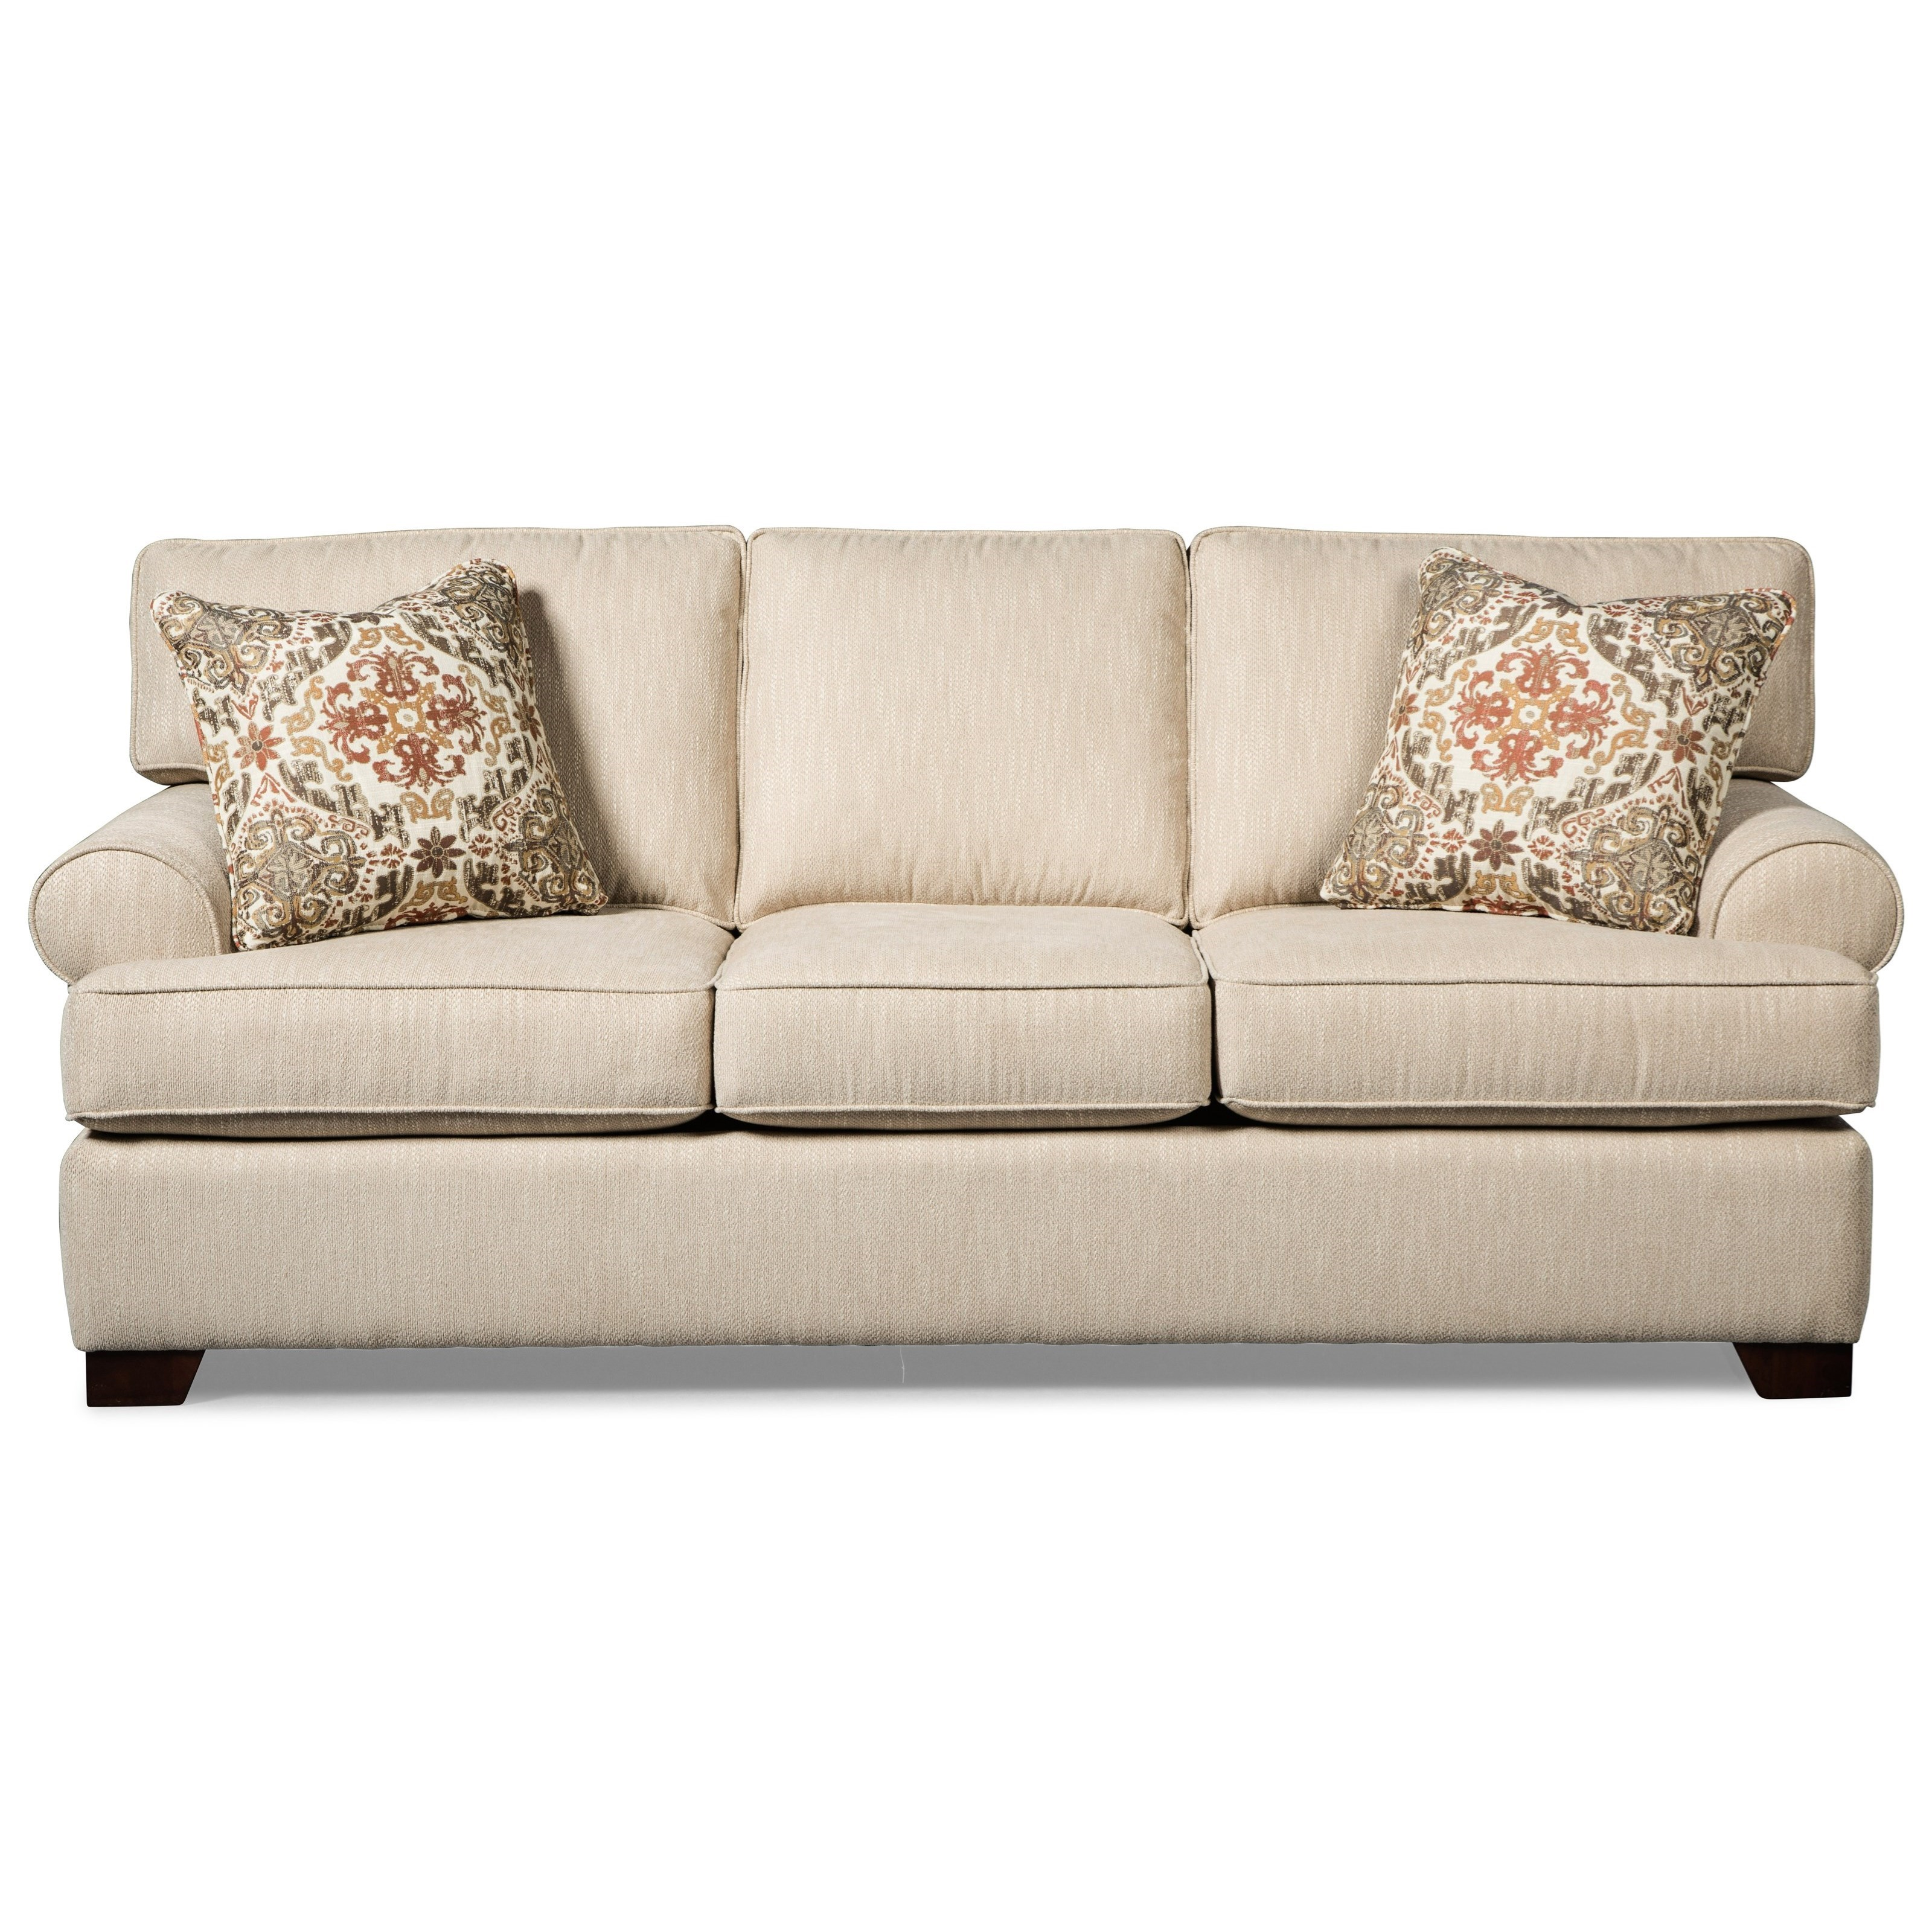 Casual Queen Sleeper Sofa With Rolled Arms And Memory Foam Mattress